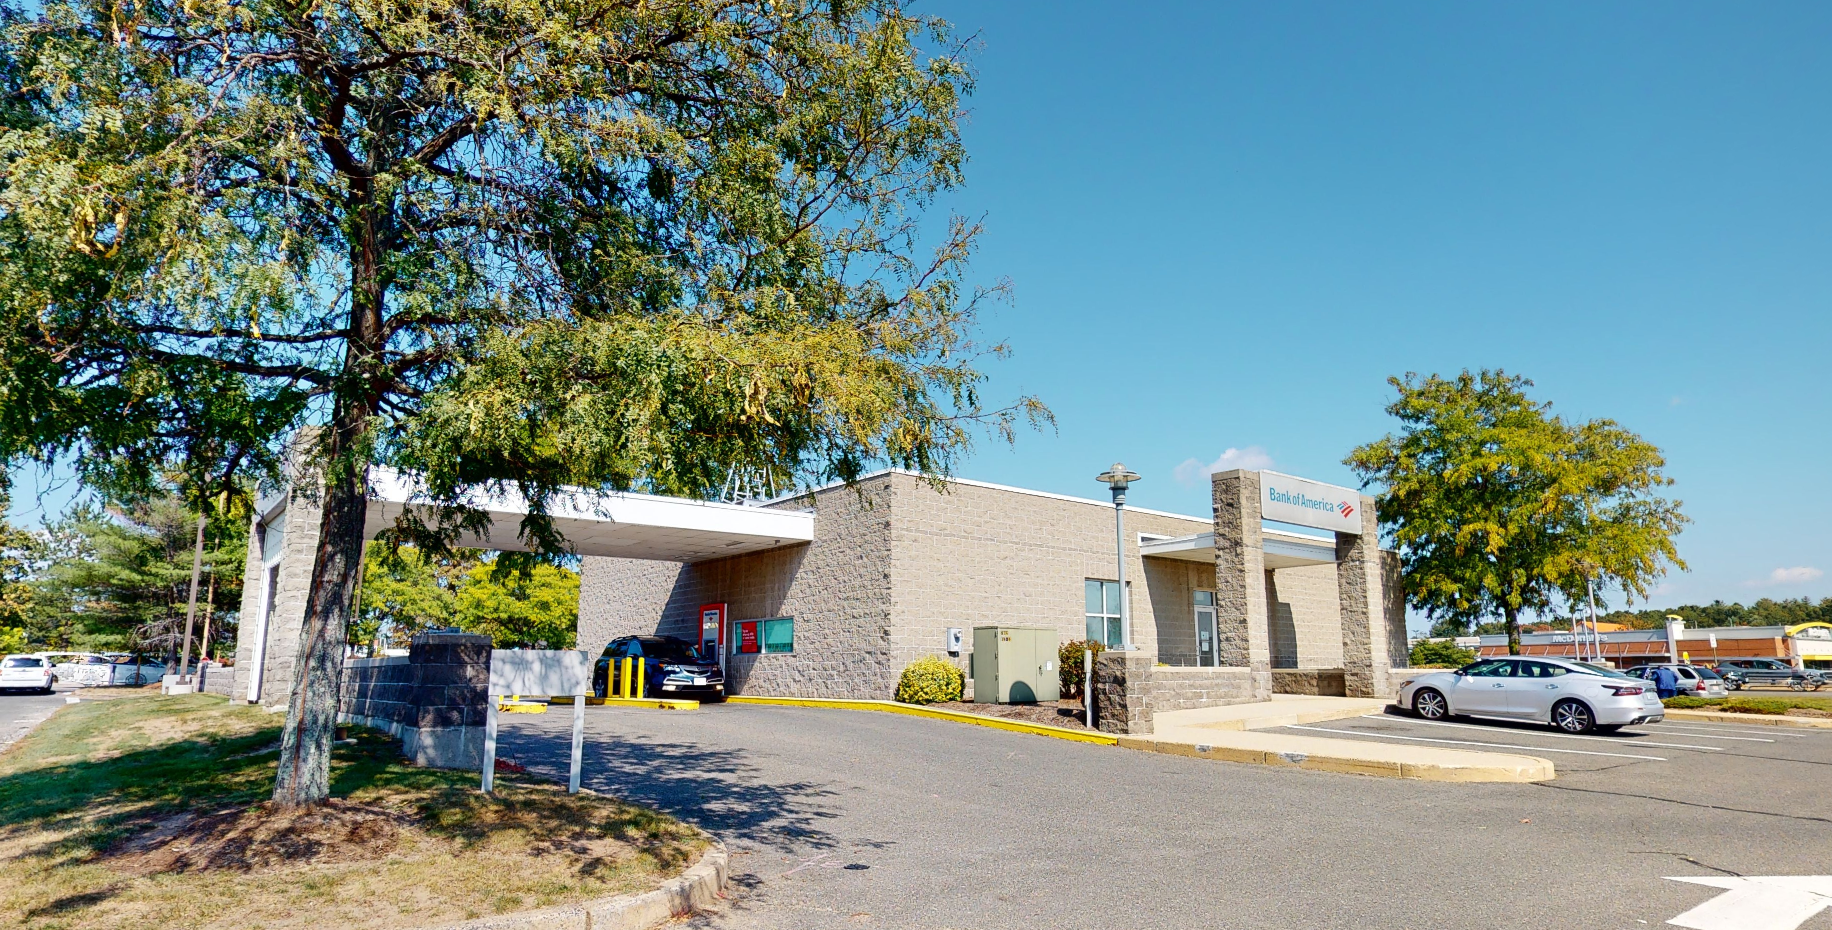 Bank of America financial center with drive-thru ATM   638 Memorial Dr, Chicopee, MA 01020